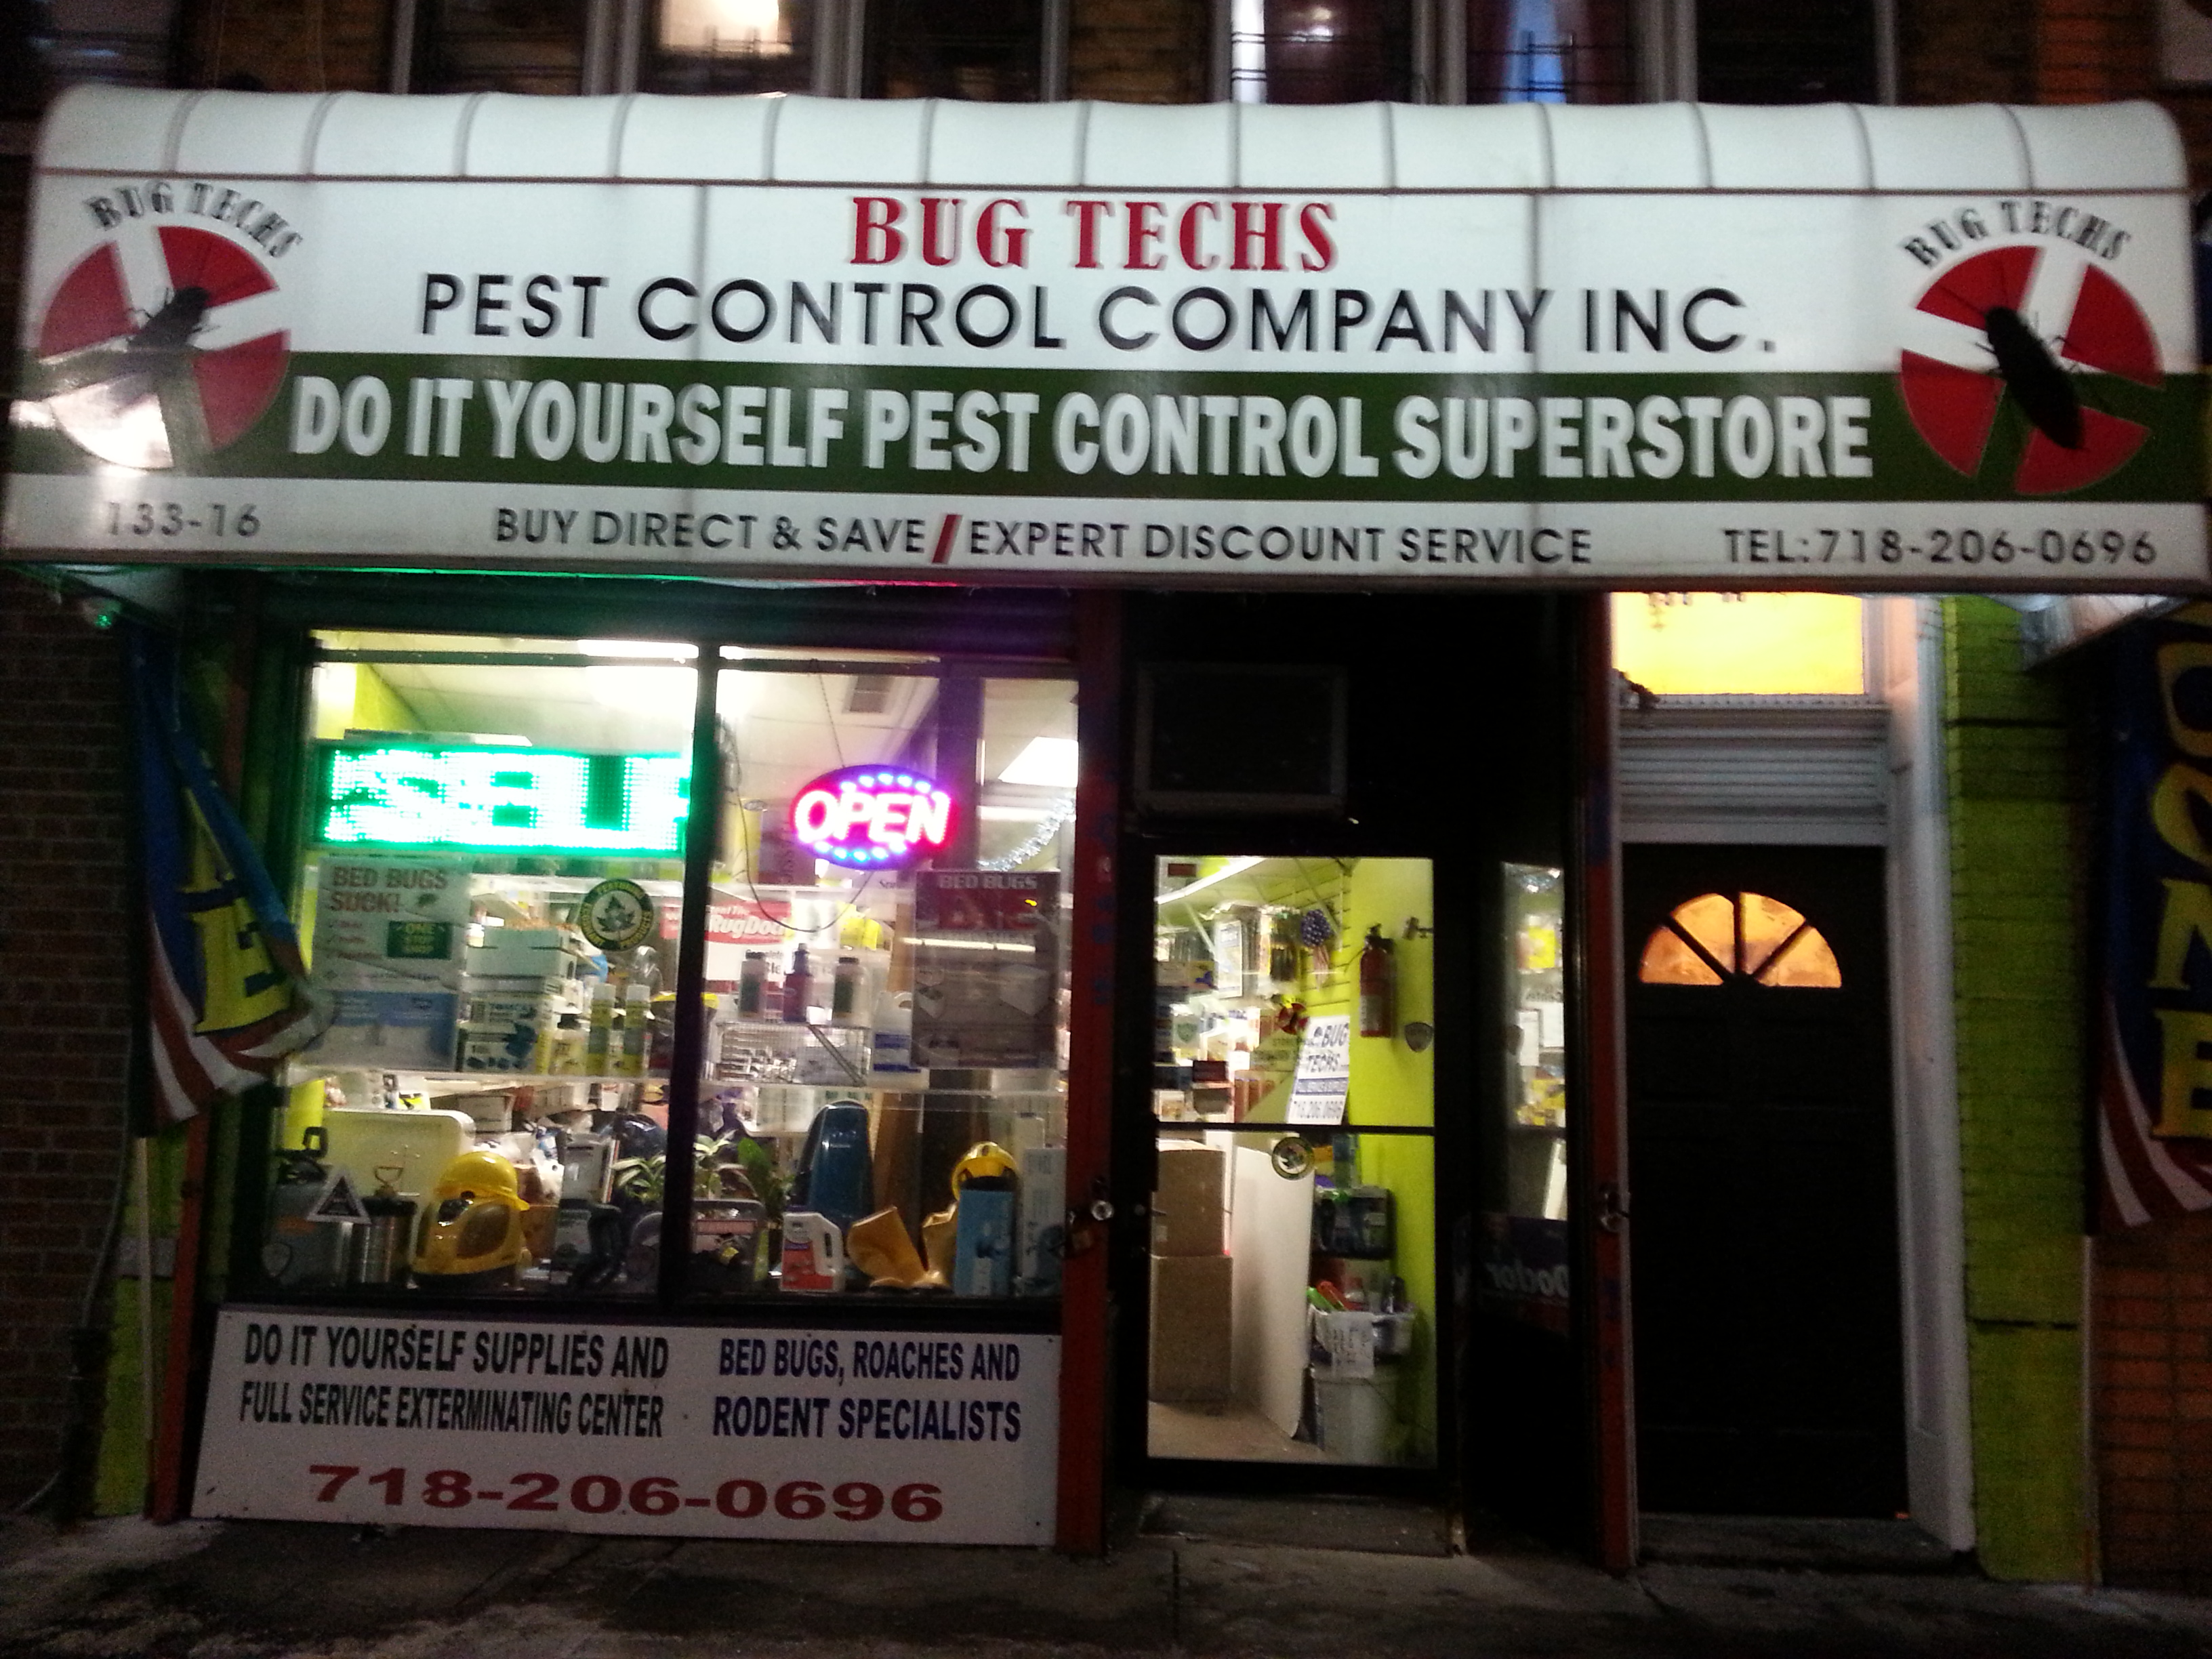 Diy Pest Control Near Me Bug Techs Pest Control Company Inc Coupons Near Me In